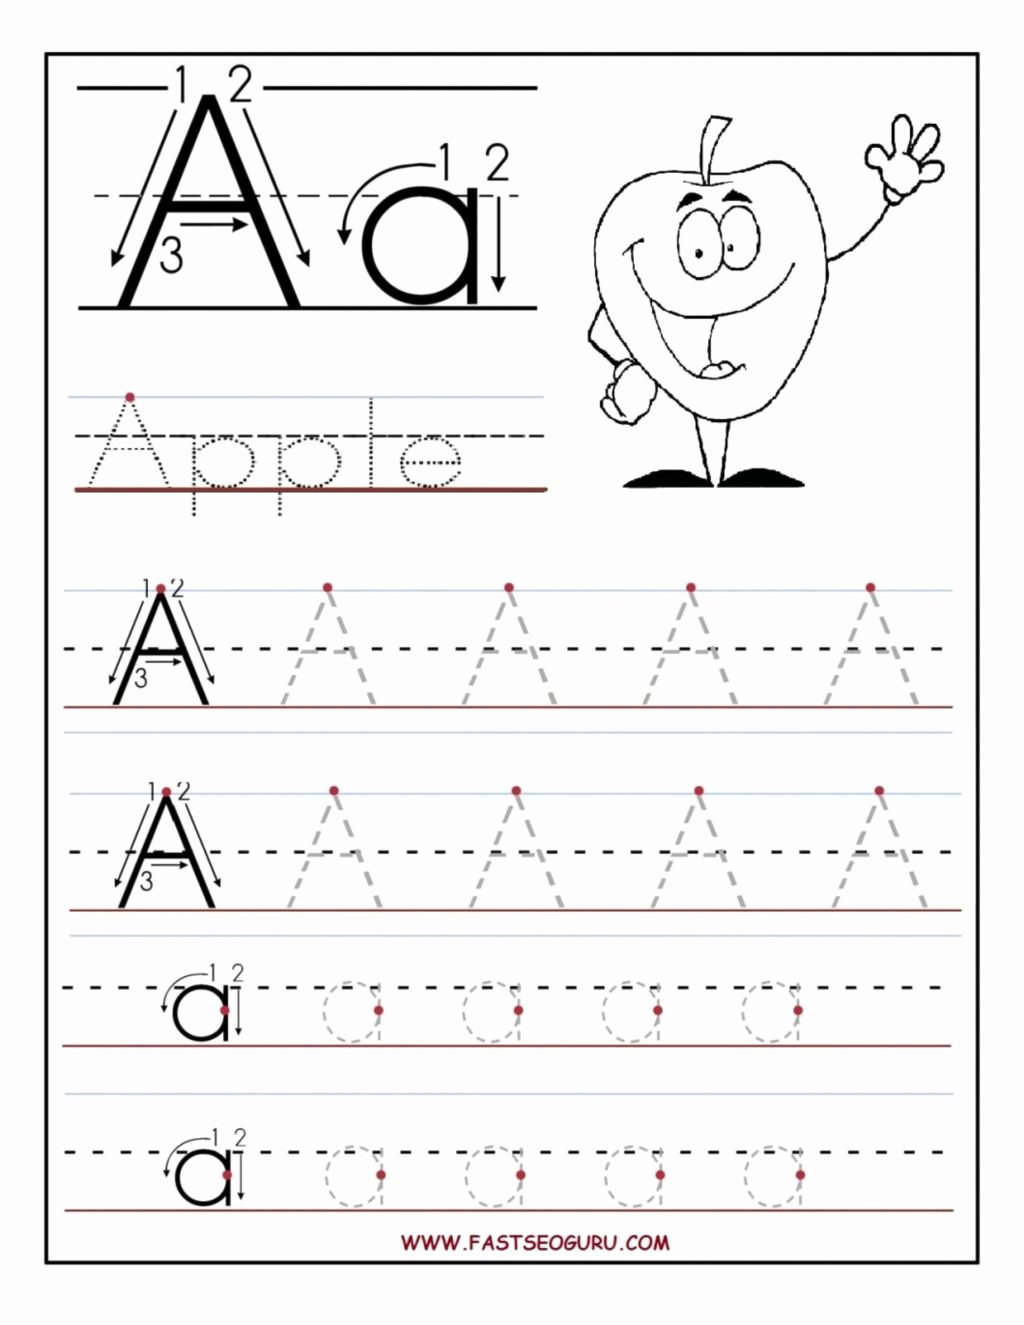 Printable Letter A Worksheets for Preschoolers Best Of Worksheet Worksheet Printable Alphabetng Free Kids Best